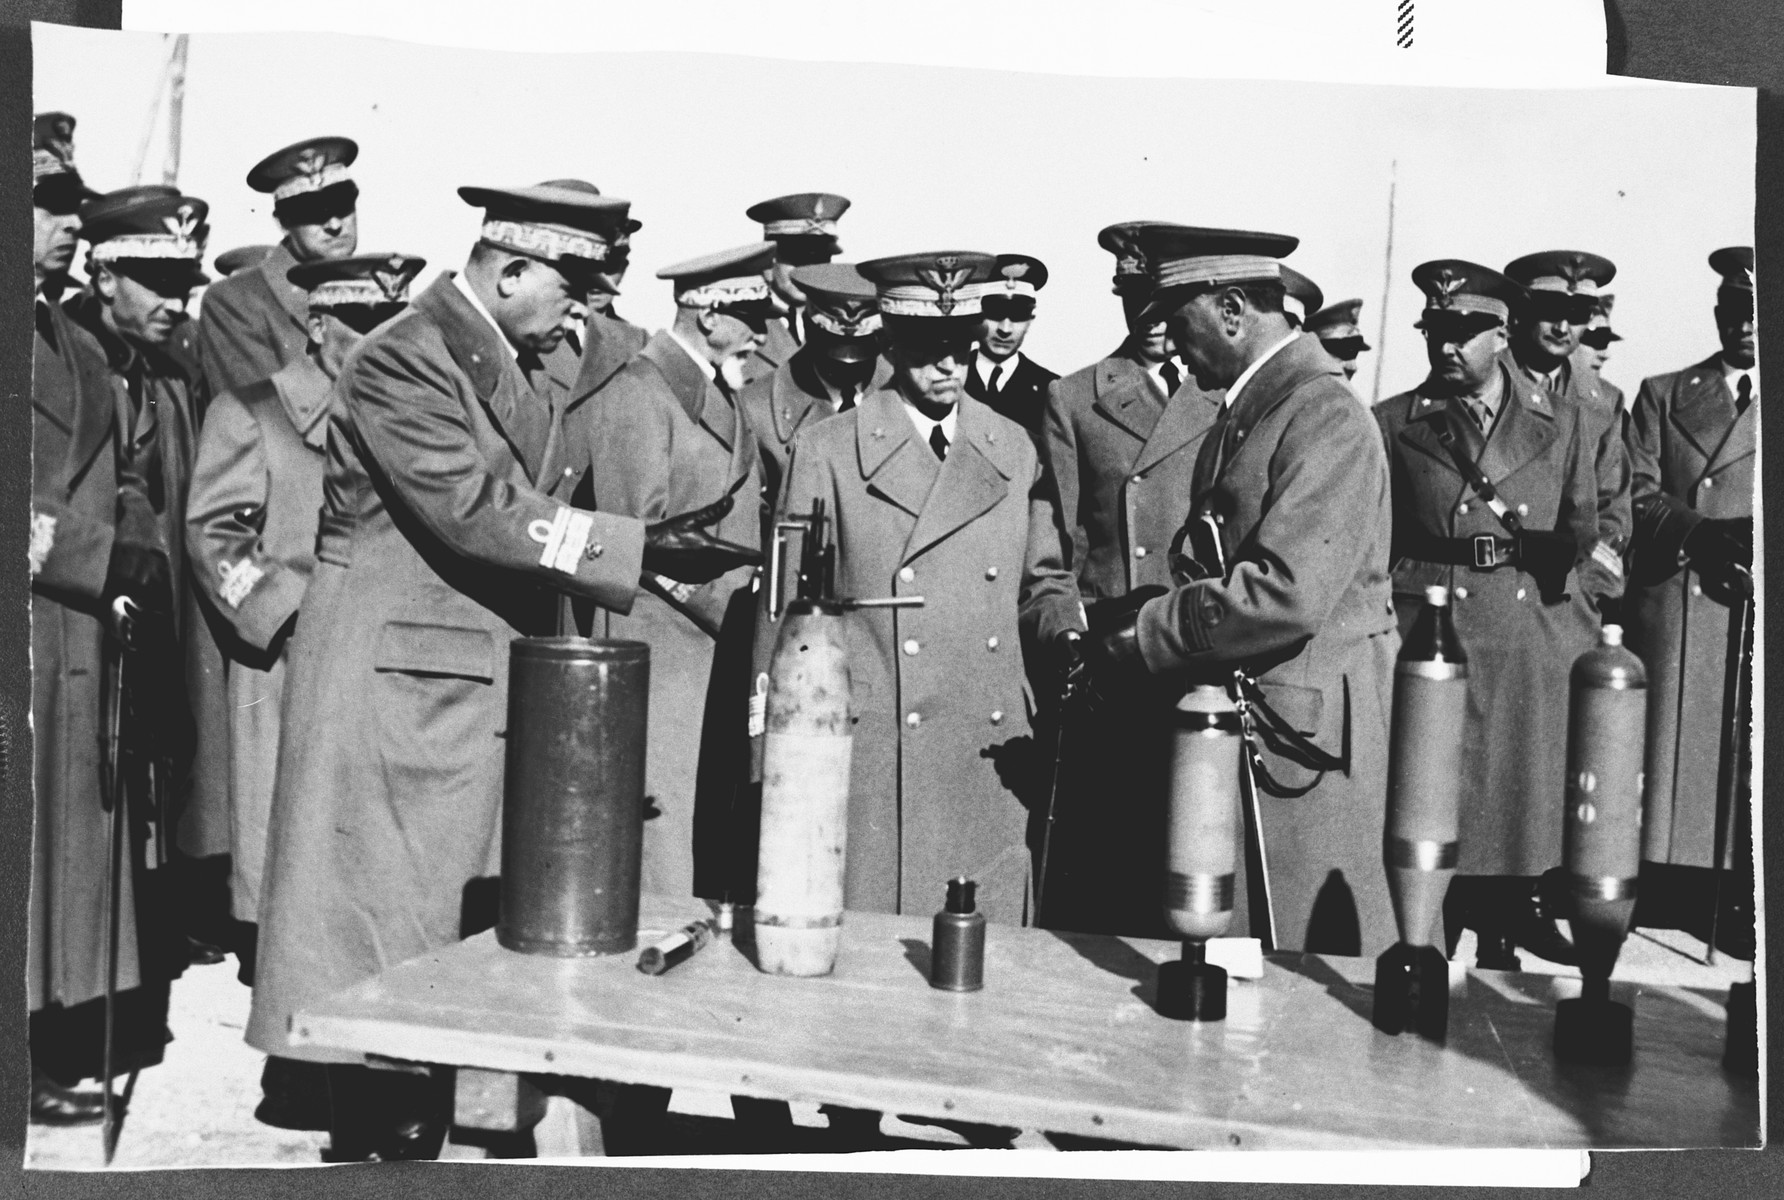 Aldo Foa displays one of his military inventions to King Vittorio Emanuele.